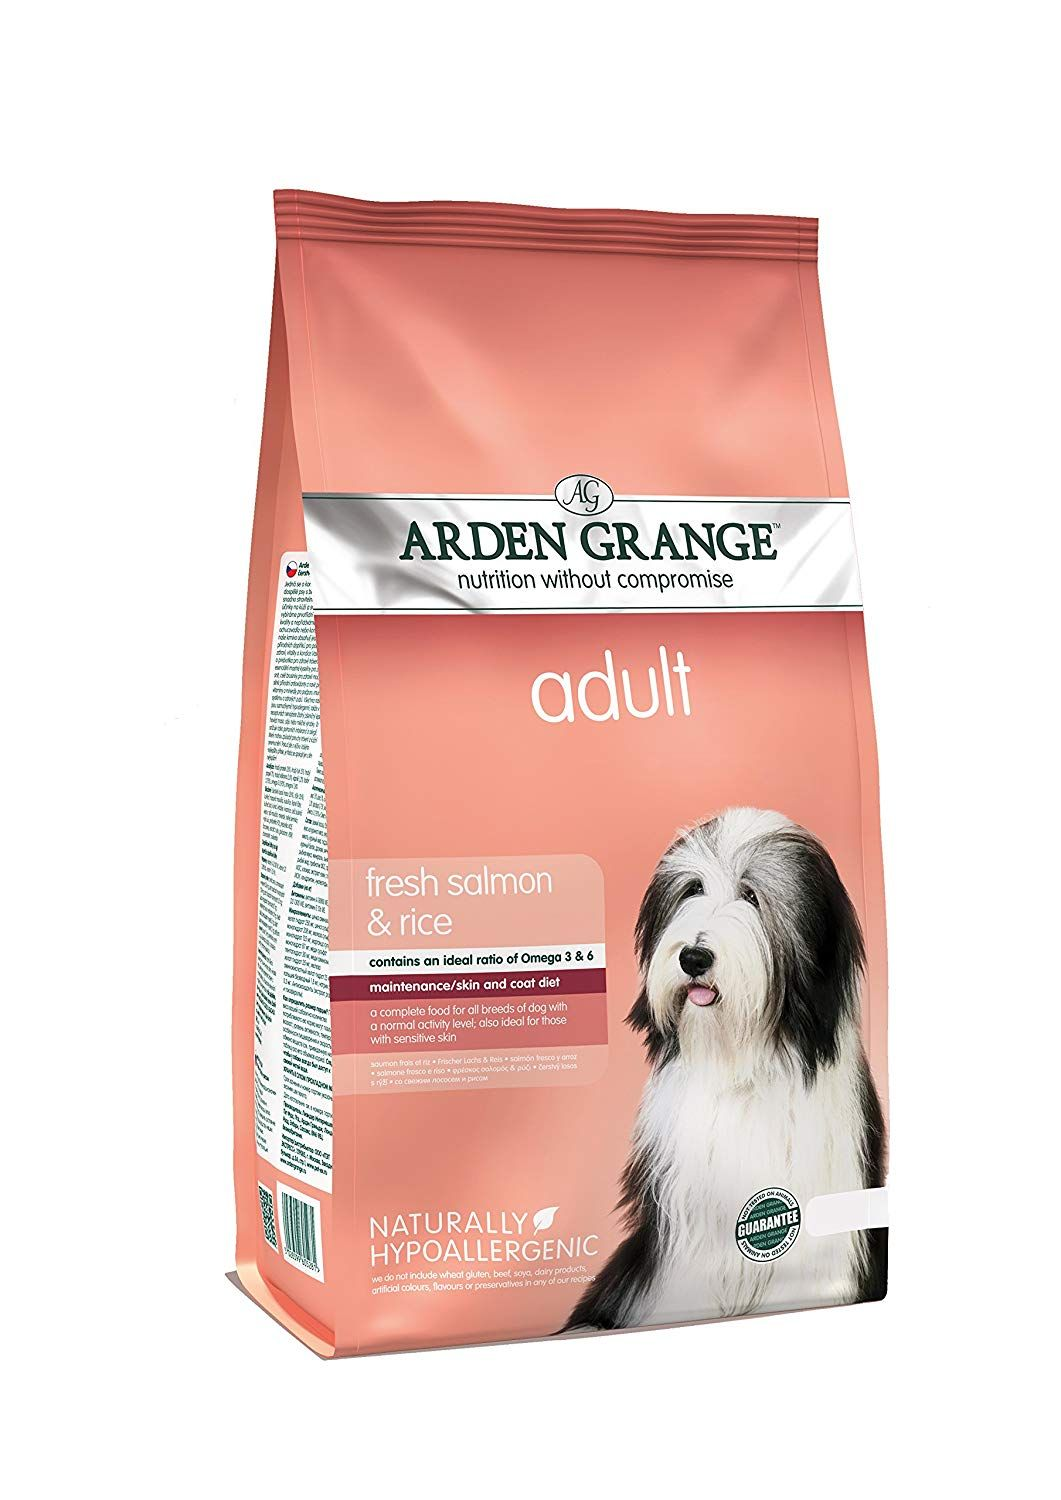 Elizabeth Arden Grange Adult Salmon And Rice Dog Food Want